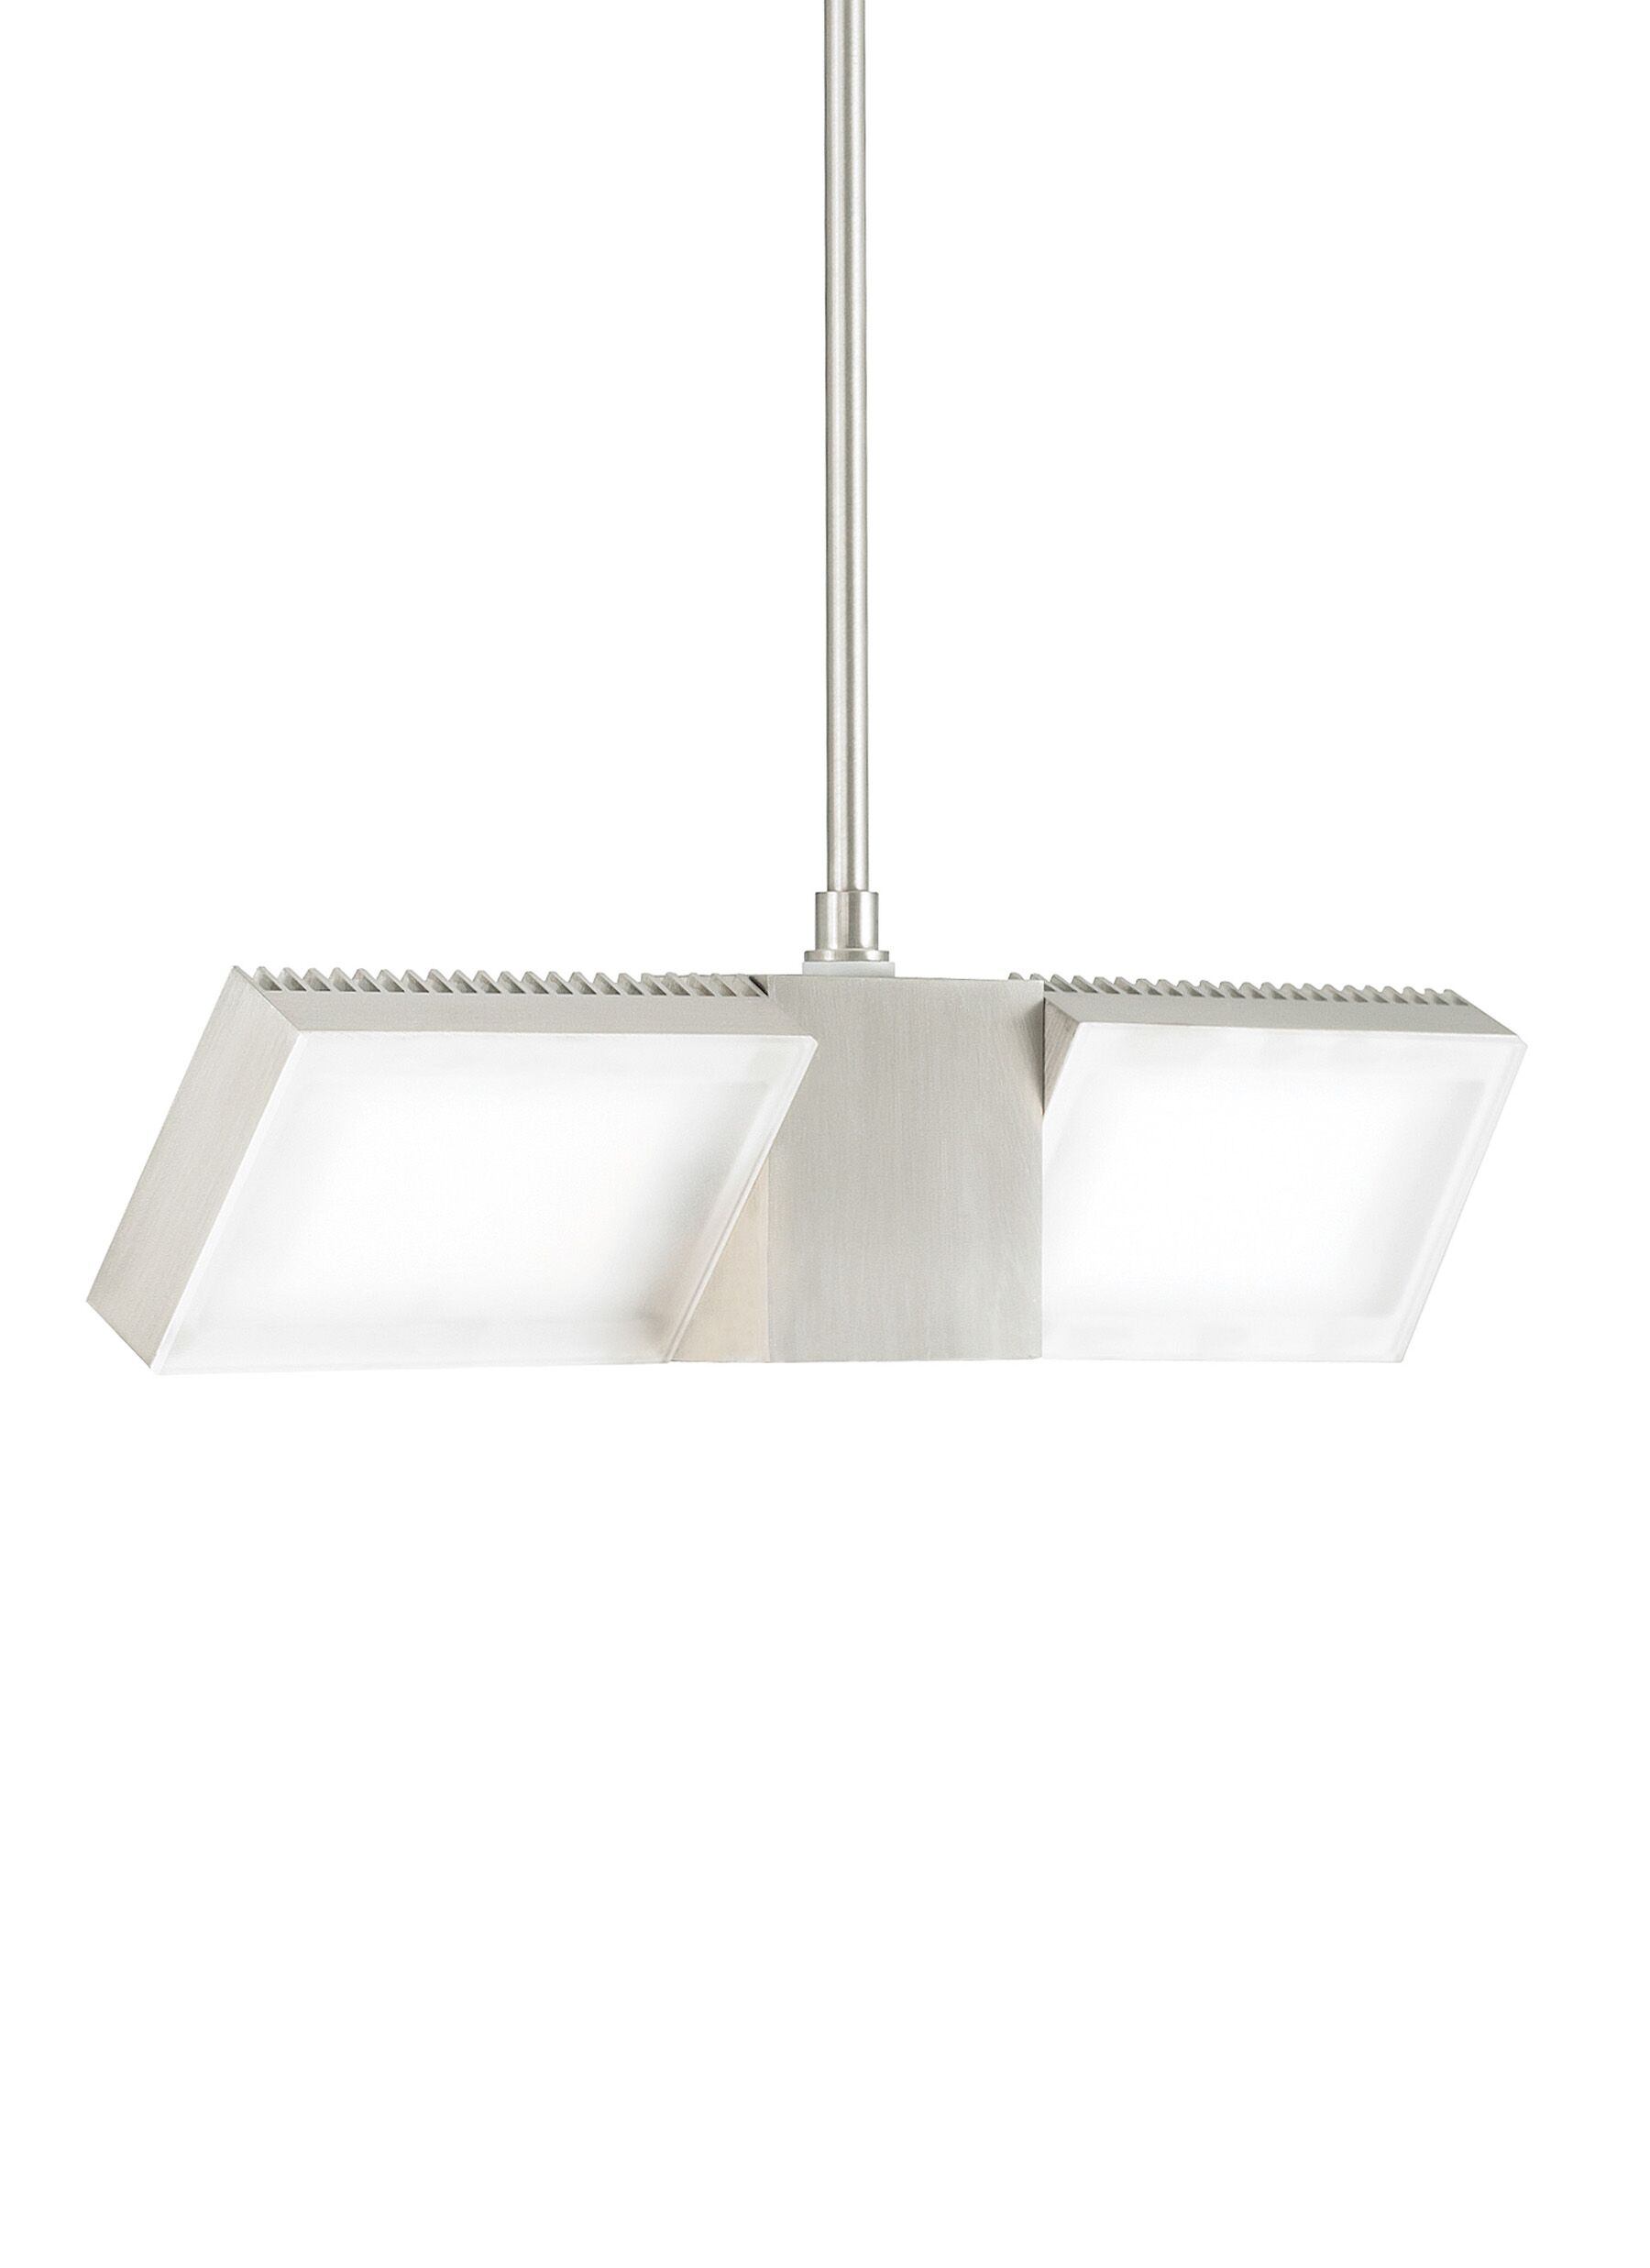 IBISS 2-Light Geometric Pendant Finish: Satin Nickel, Bulb Color Temperature: 2700K, Size: 12